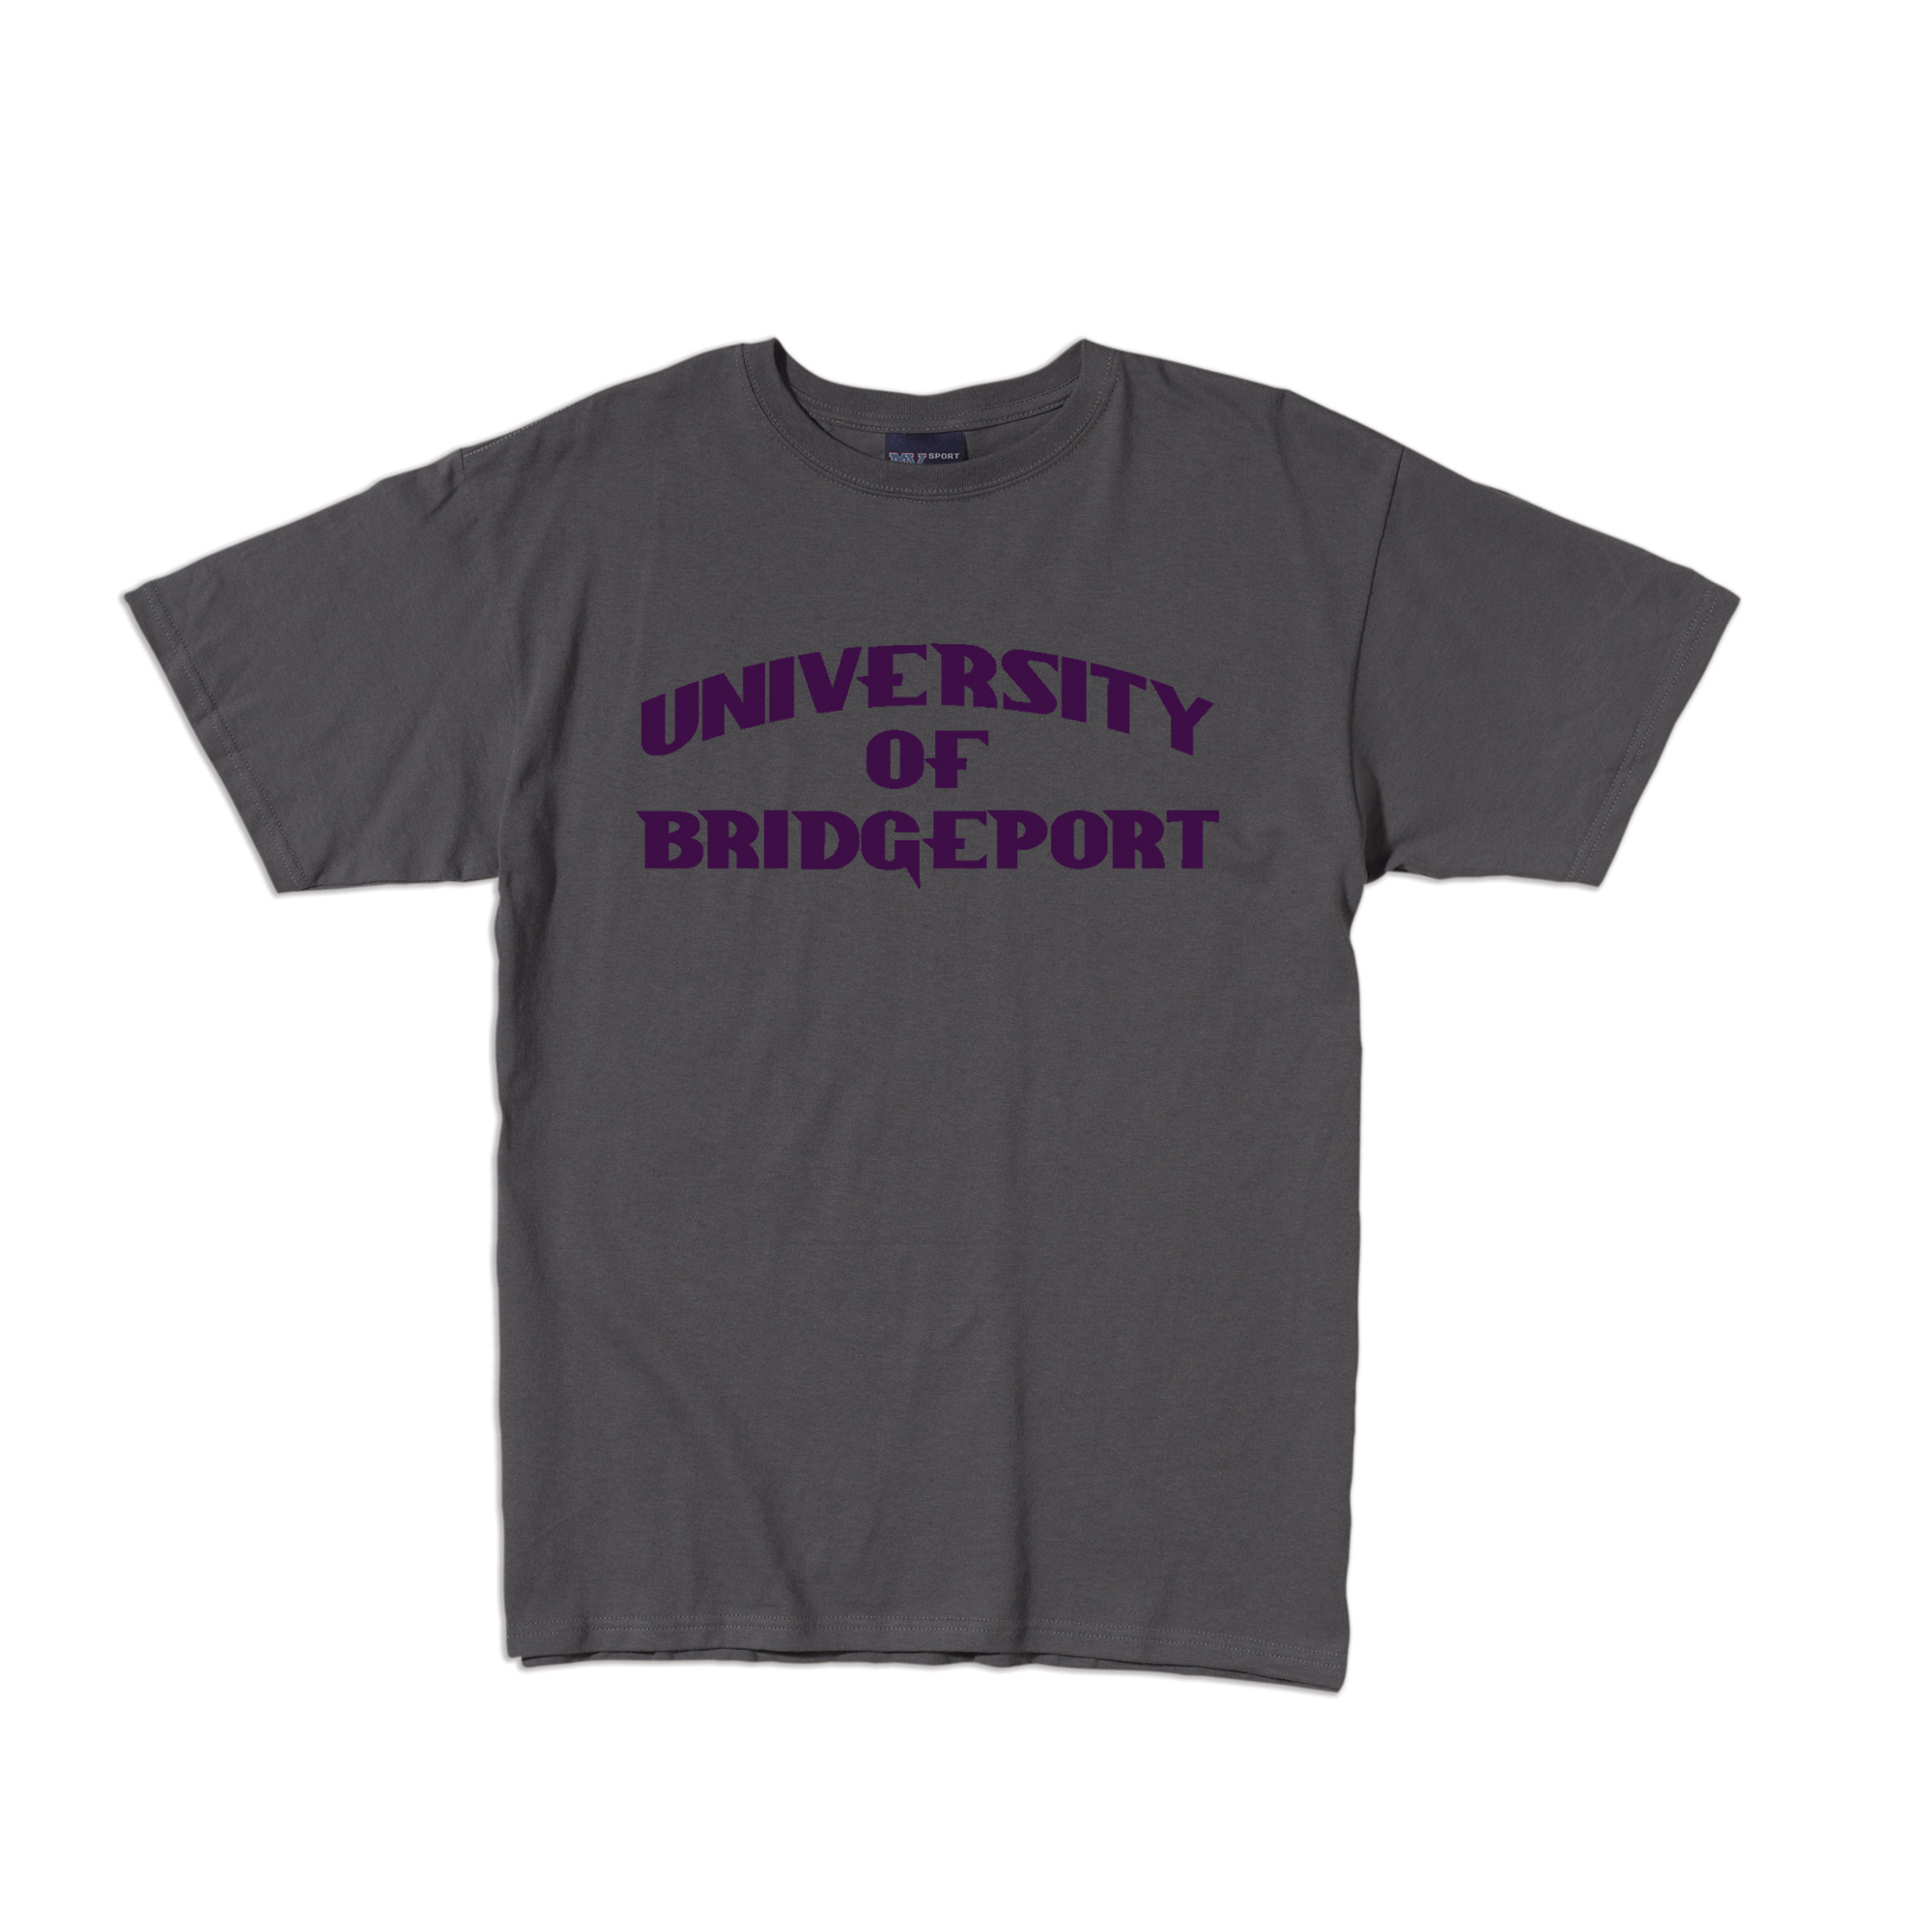 The Ub Bookstore Apparel Tees